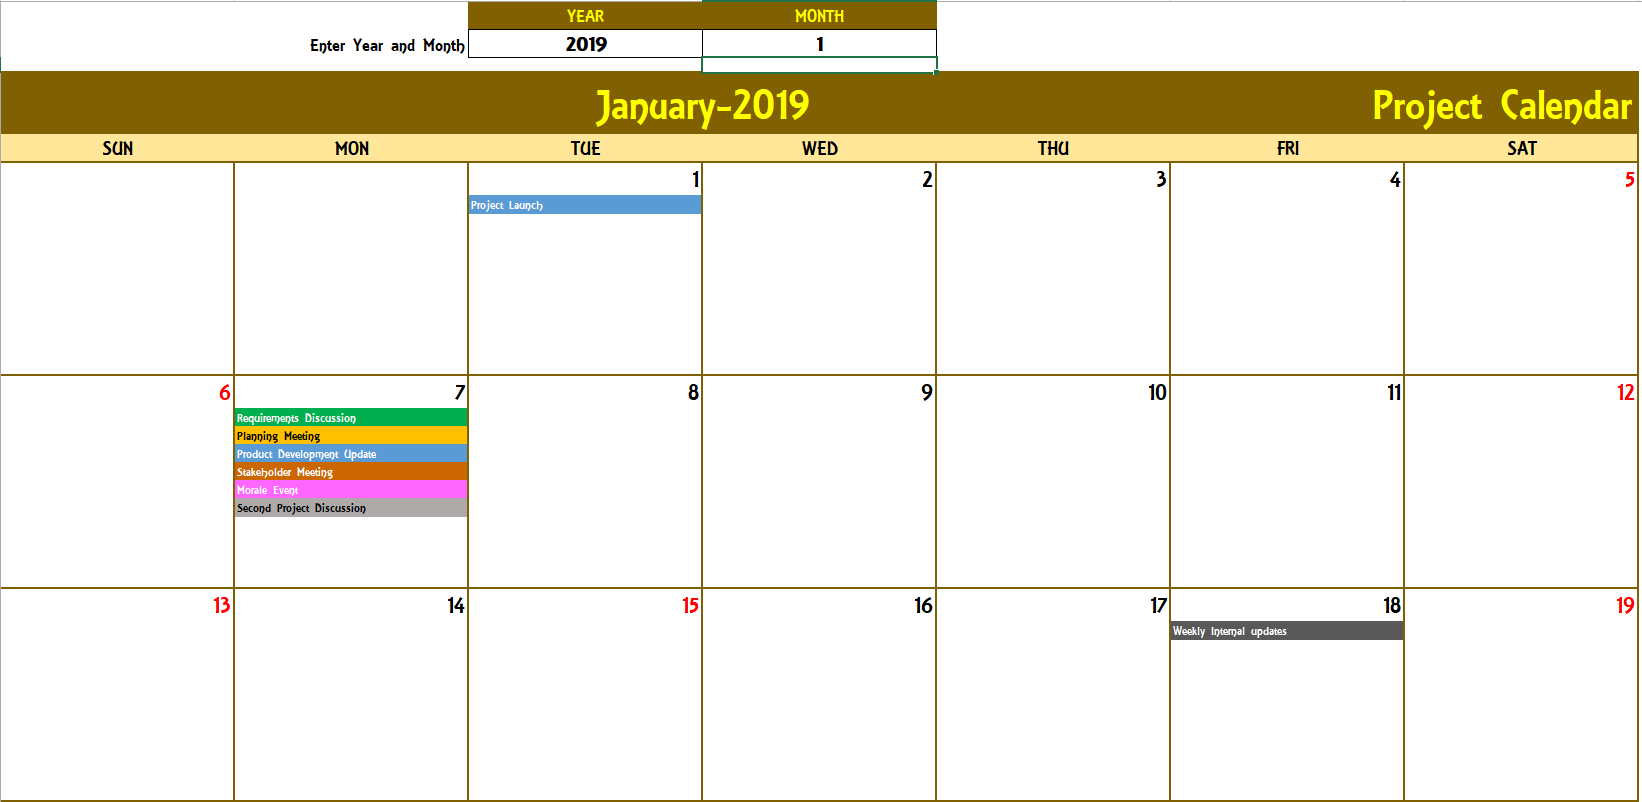 Excel Calendar Template - Excel Calendar 2019, 2020 Or Any Year pertaining to Excel Template For Calendar